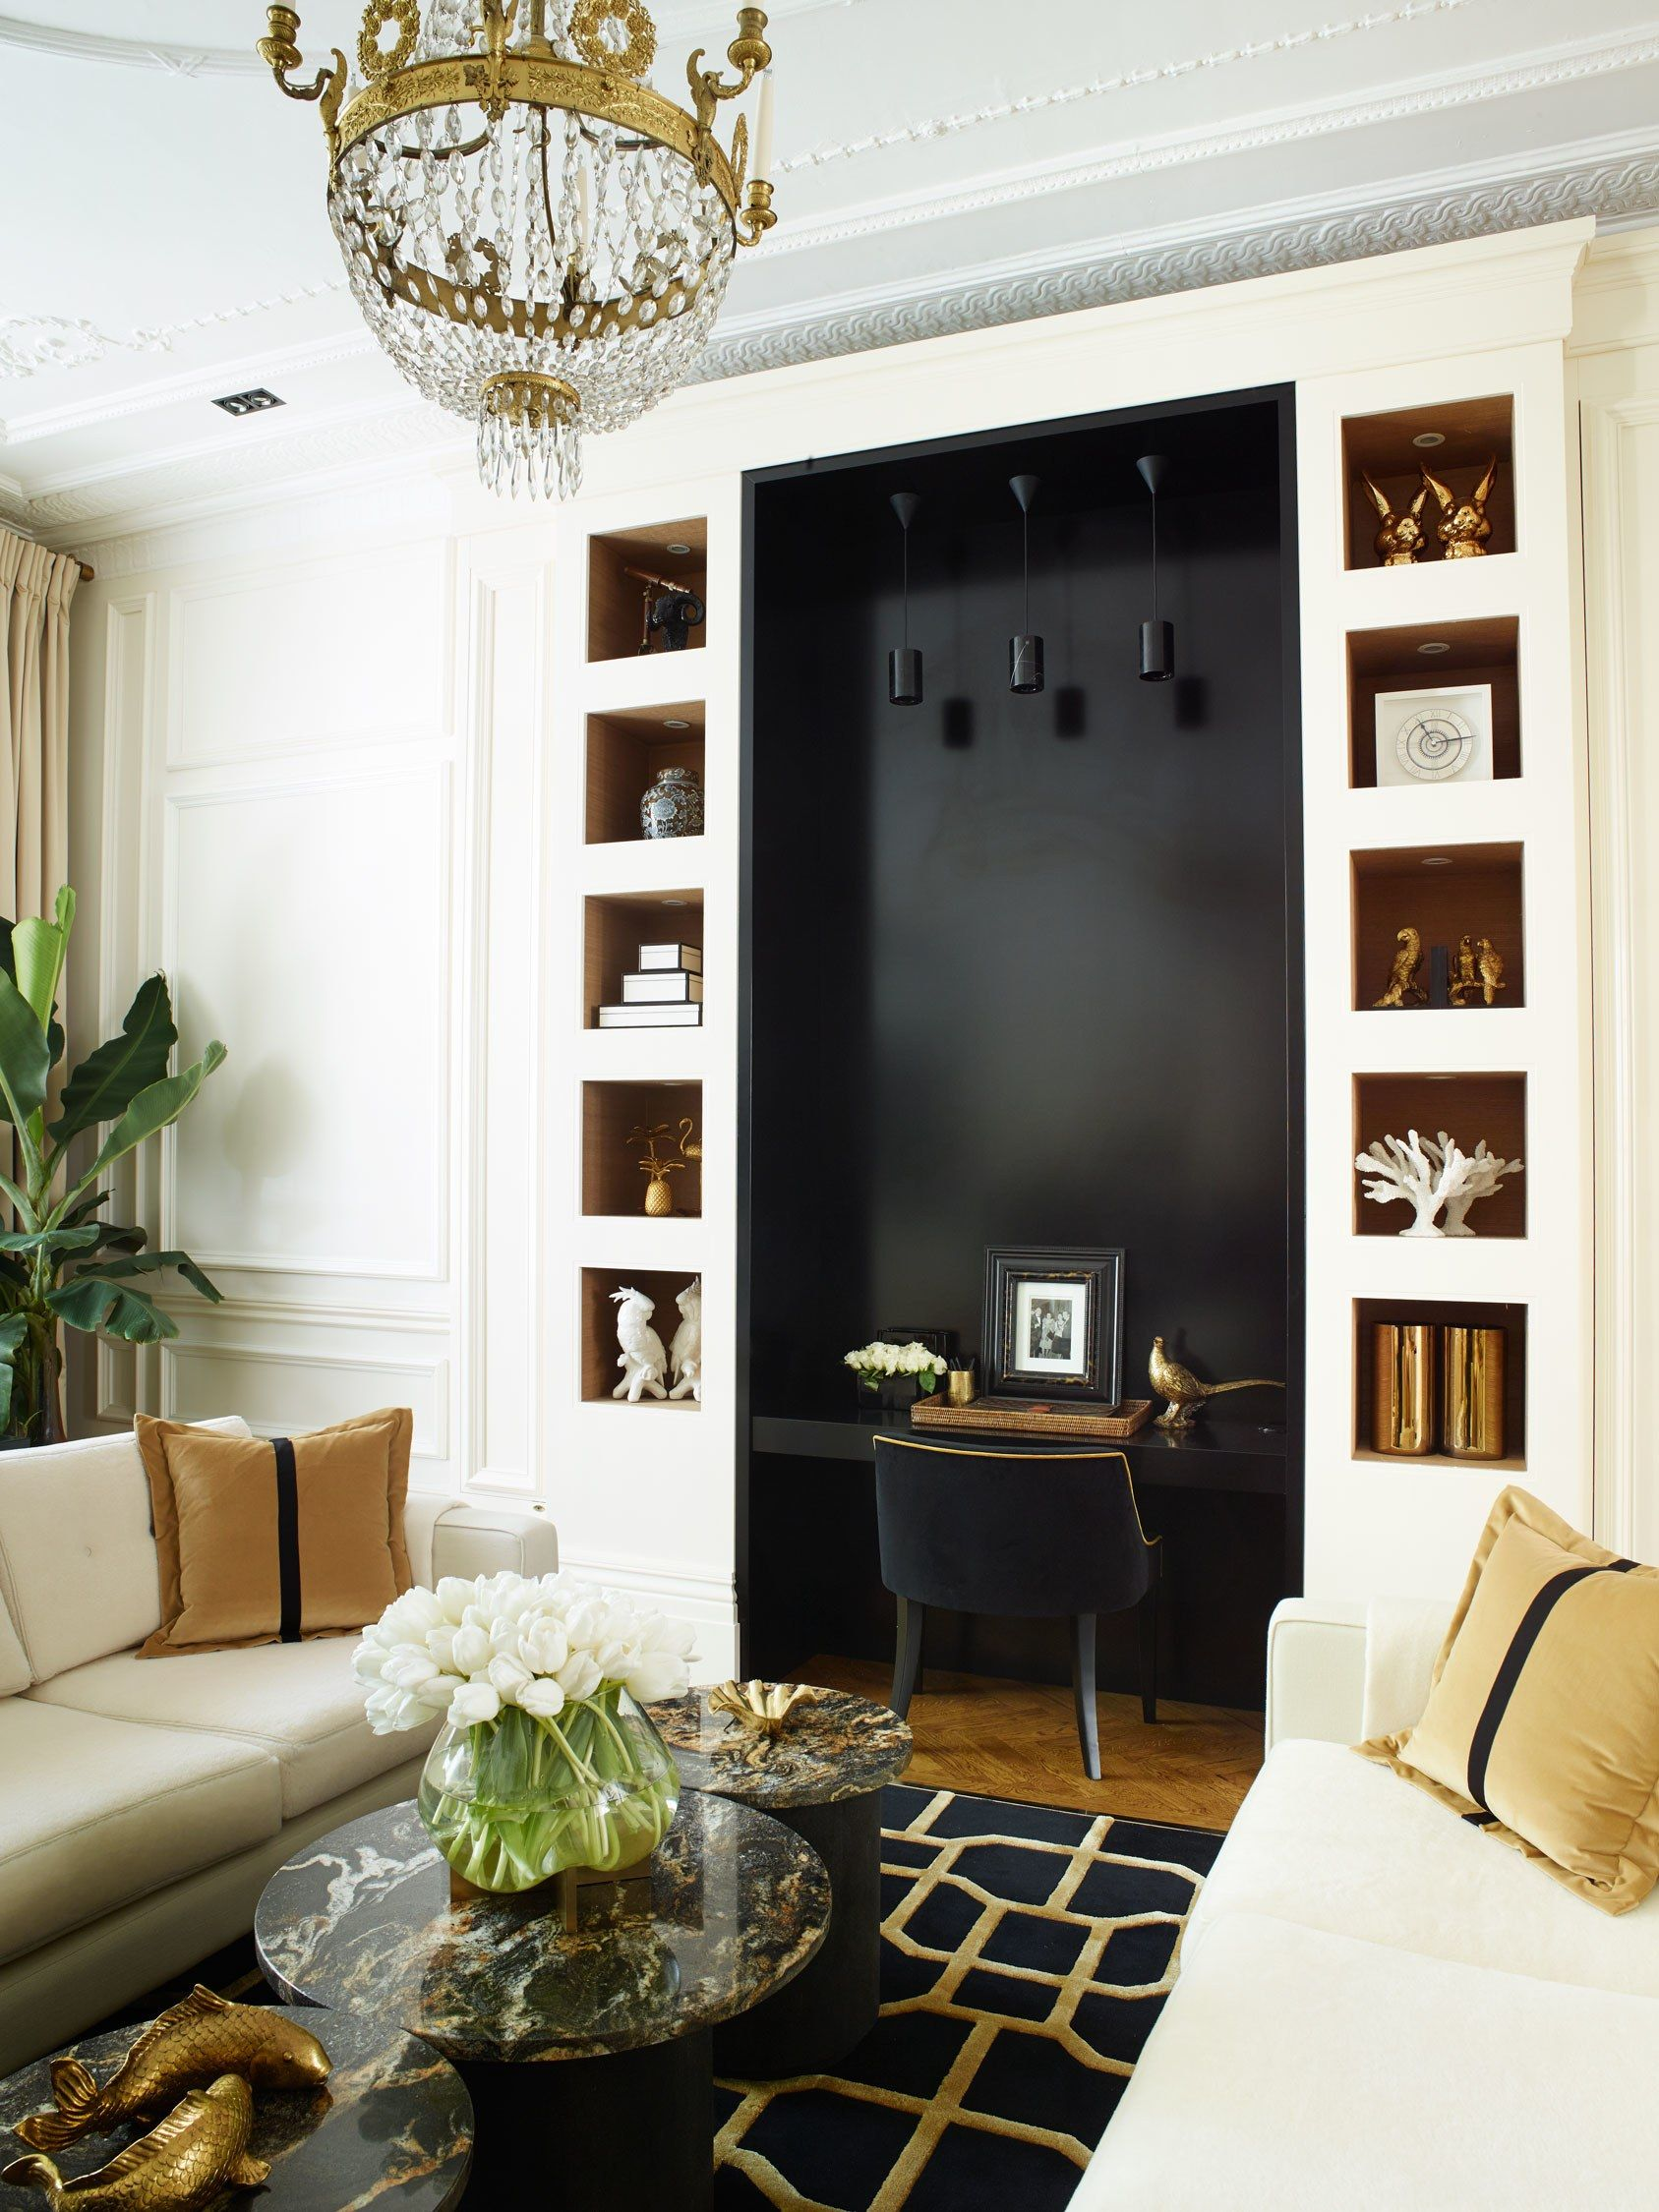 A Classic London Townhouse Apartment Gets A Glamorous Art Deco Gorgeous Art Deco Living Room Design Inspiration Design